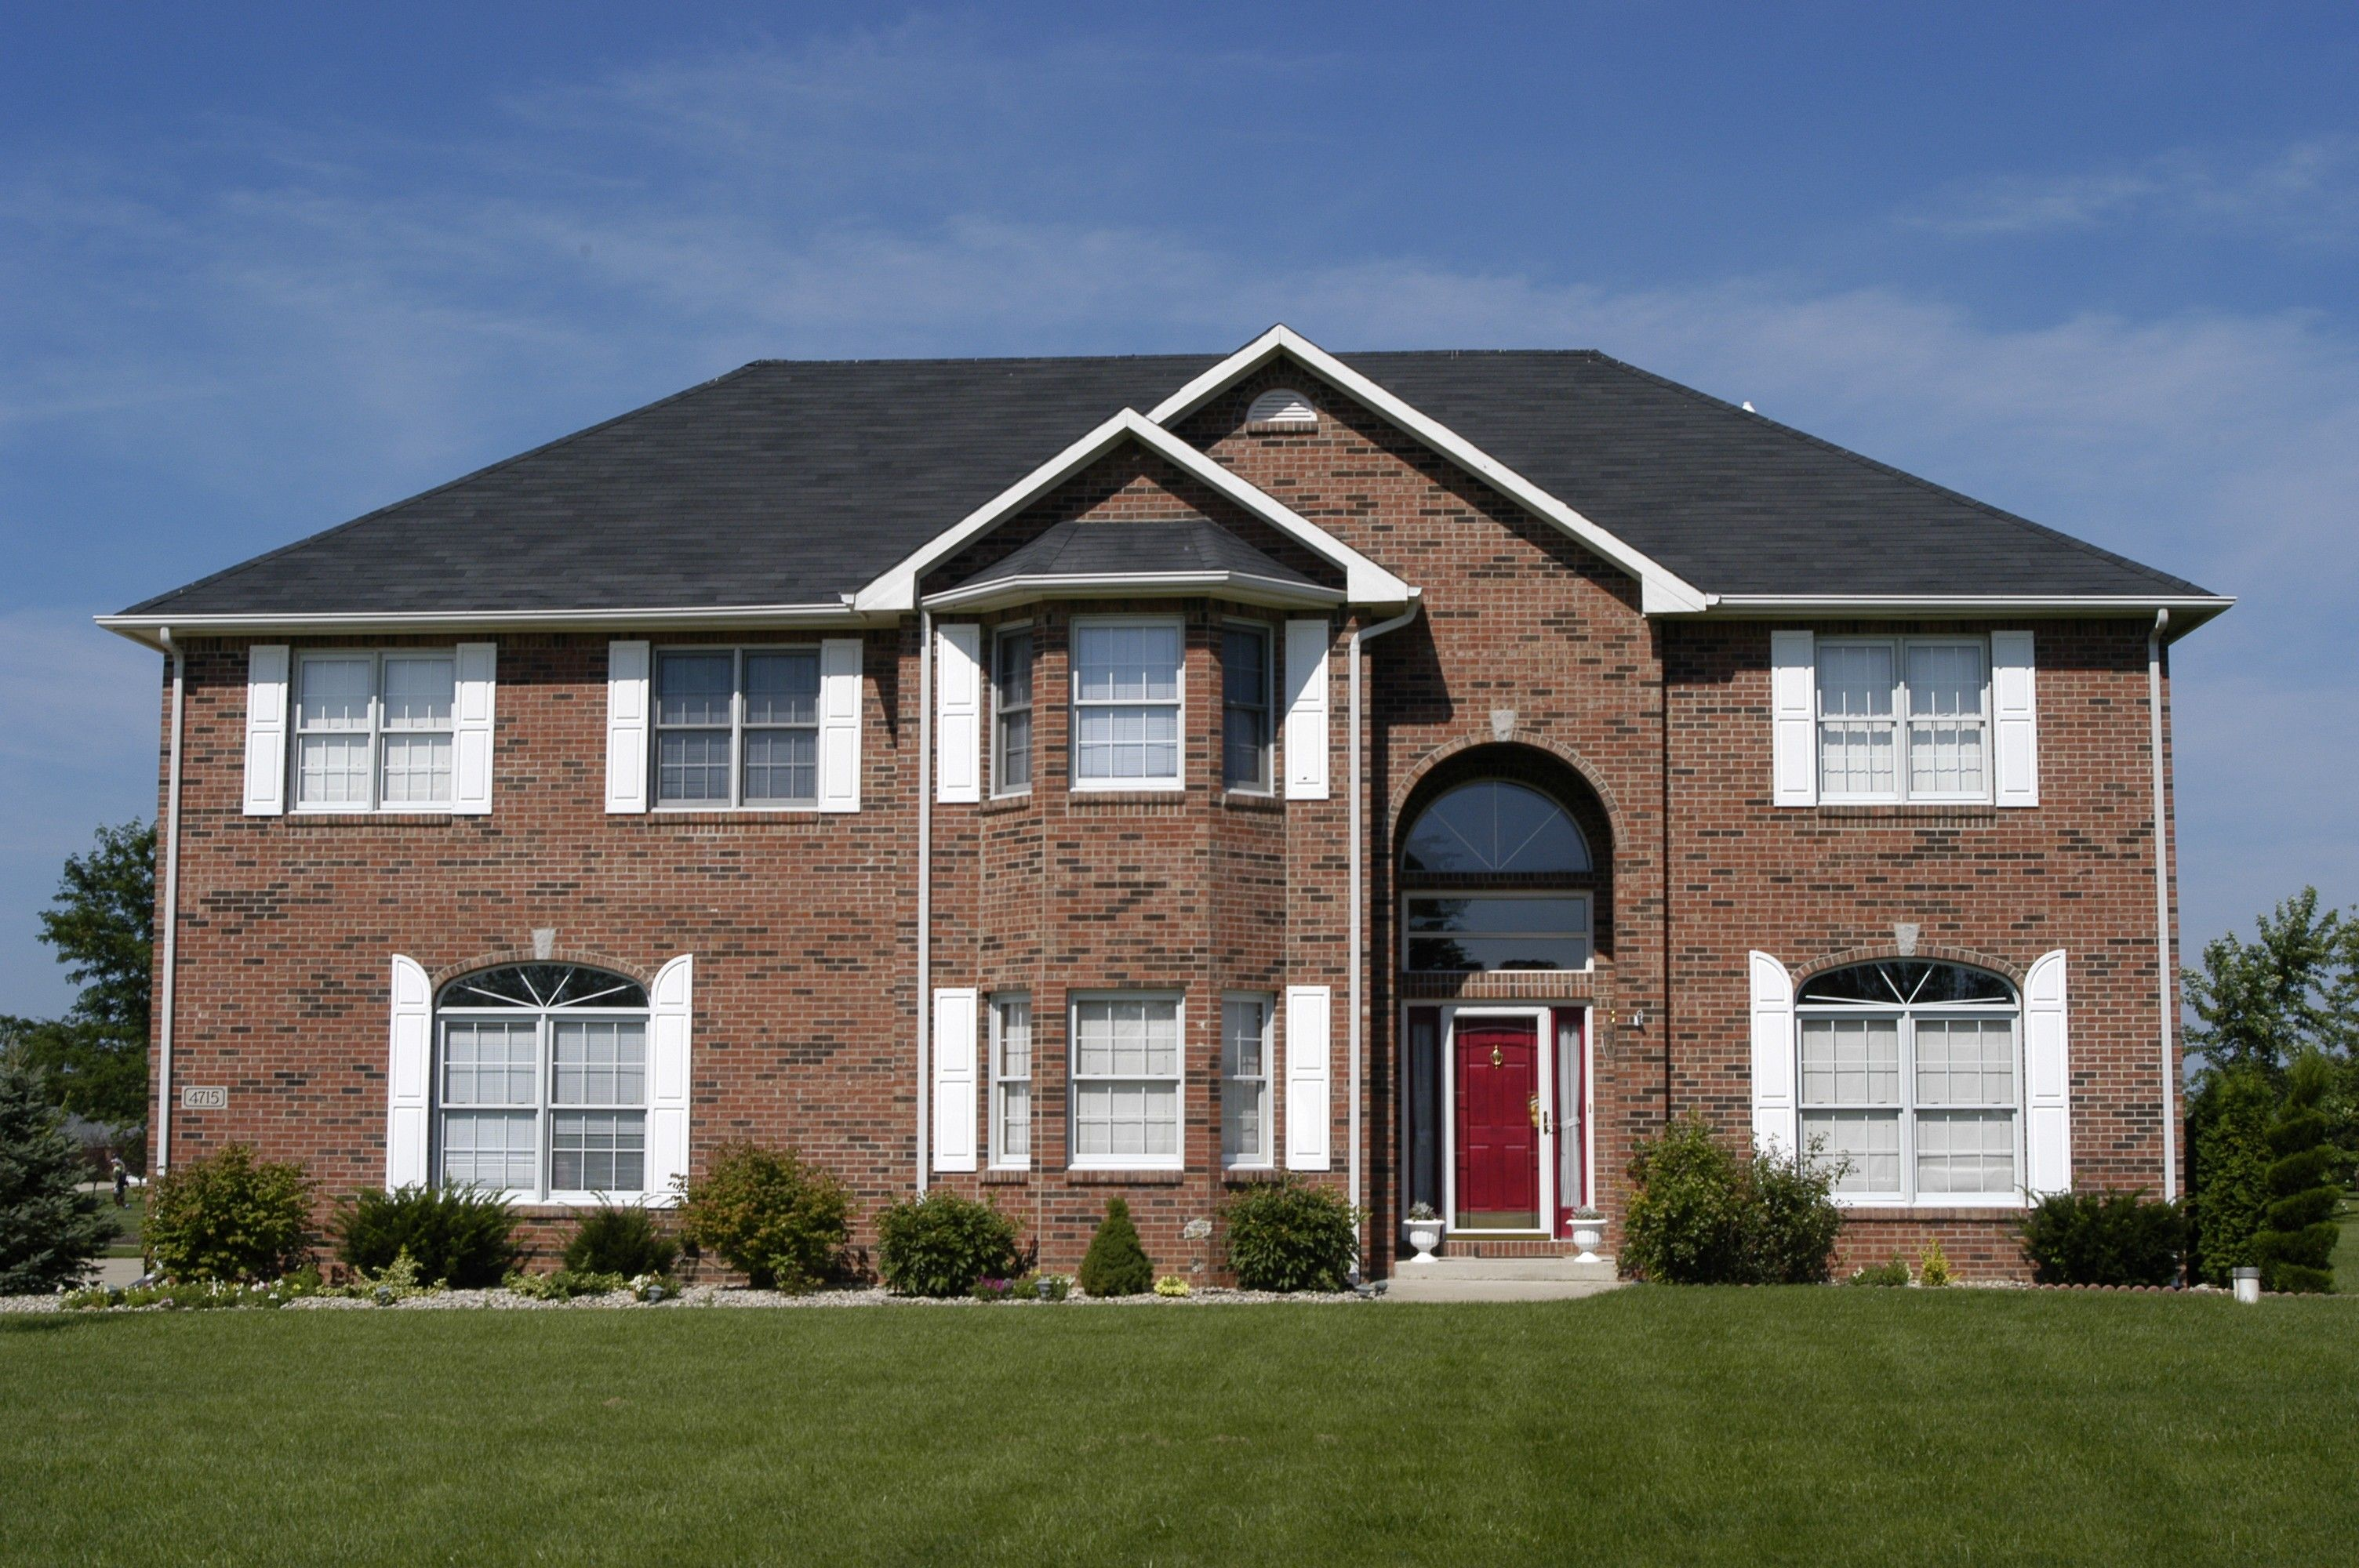 Killeen Tx Homes For Sale Contact At 254 690 3311 Simple House Simple House Design House Design